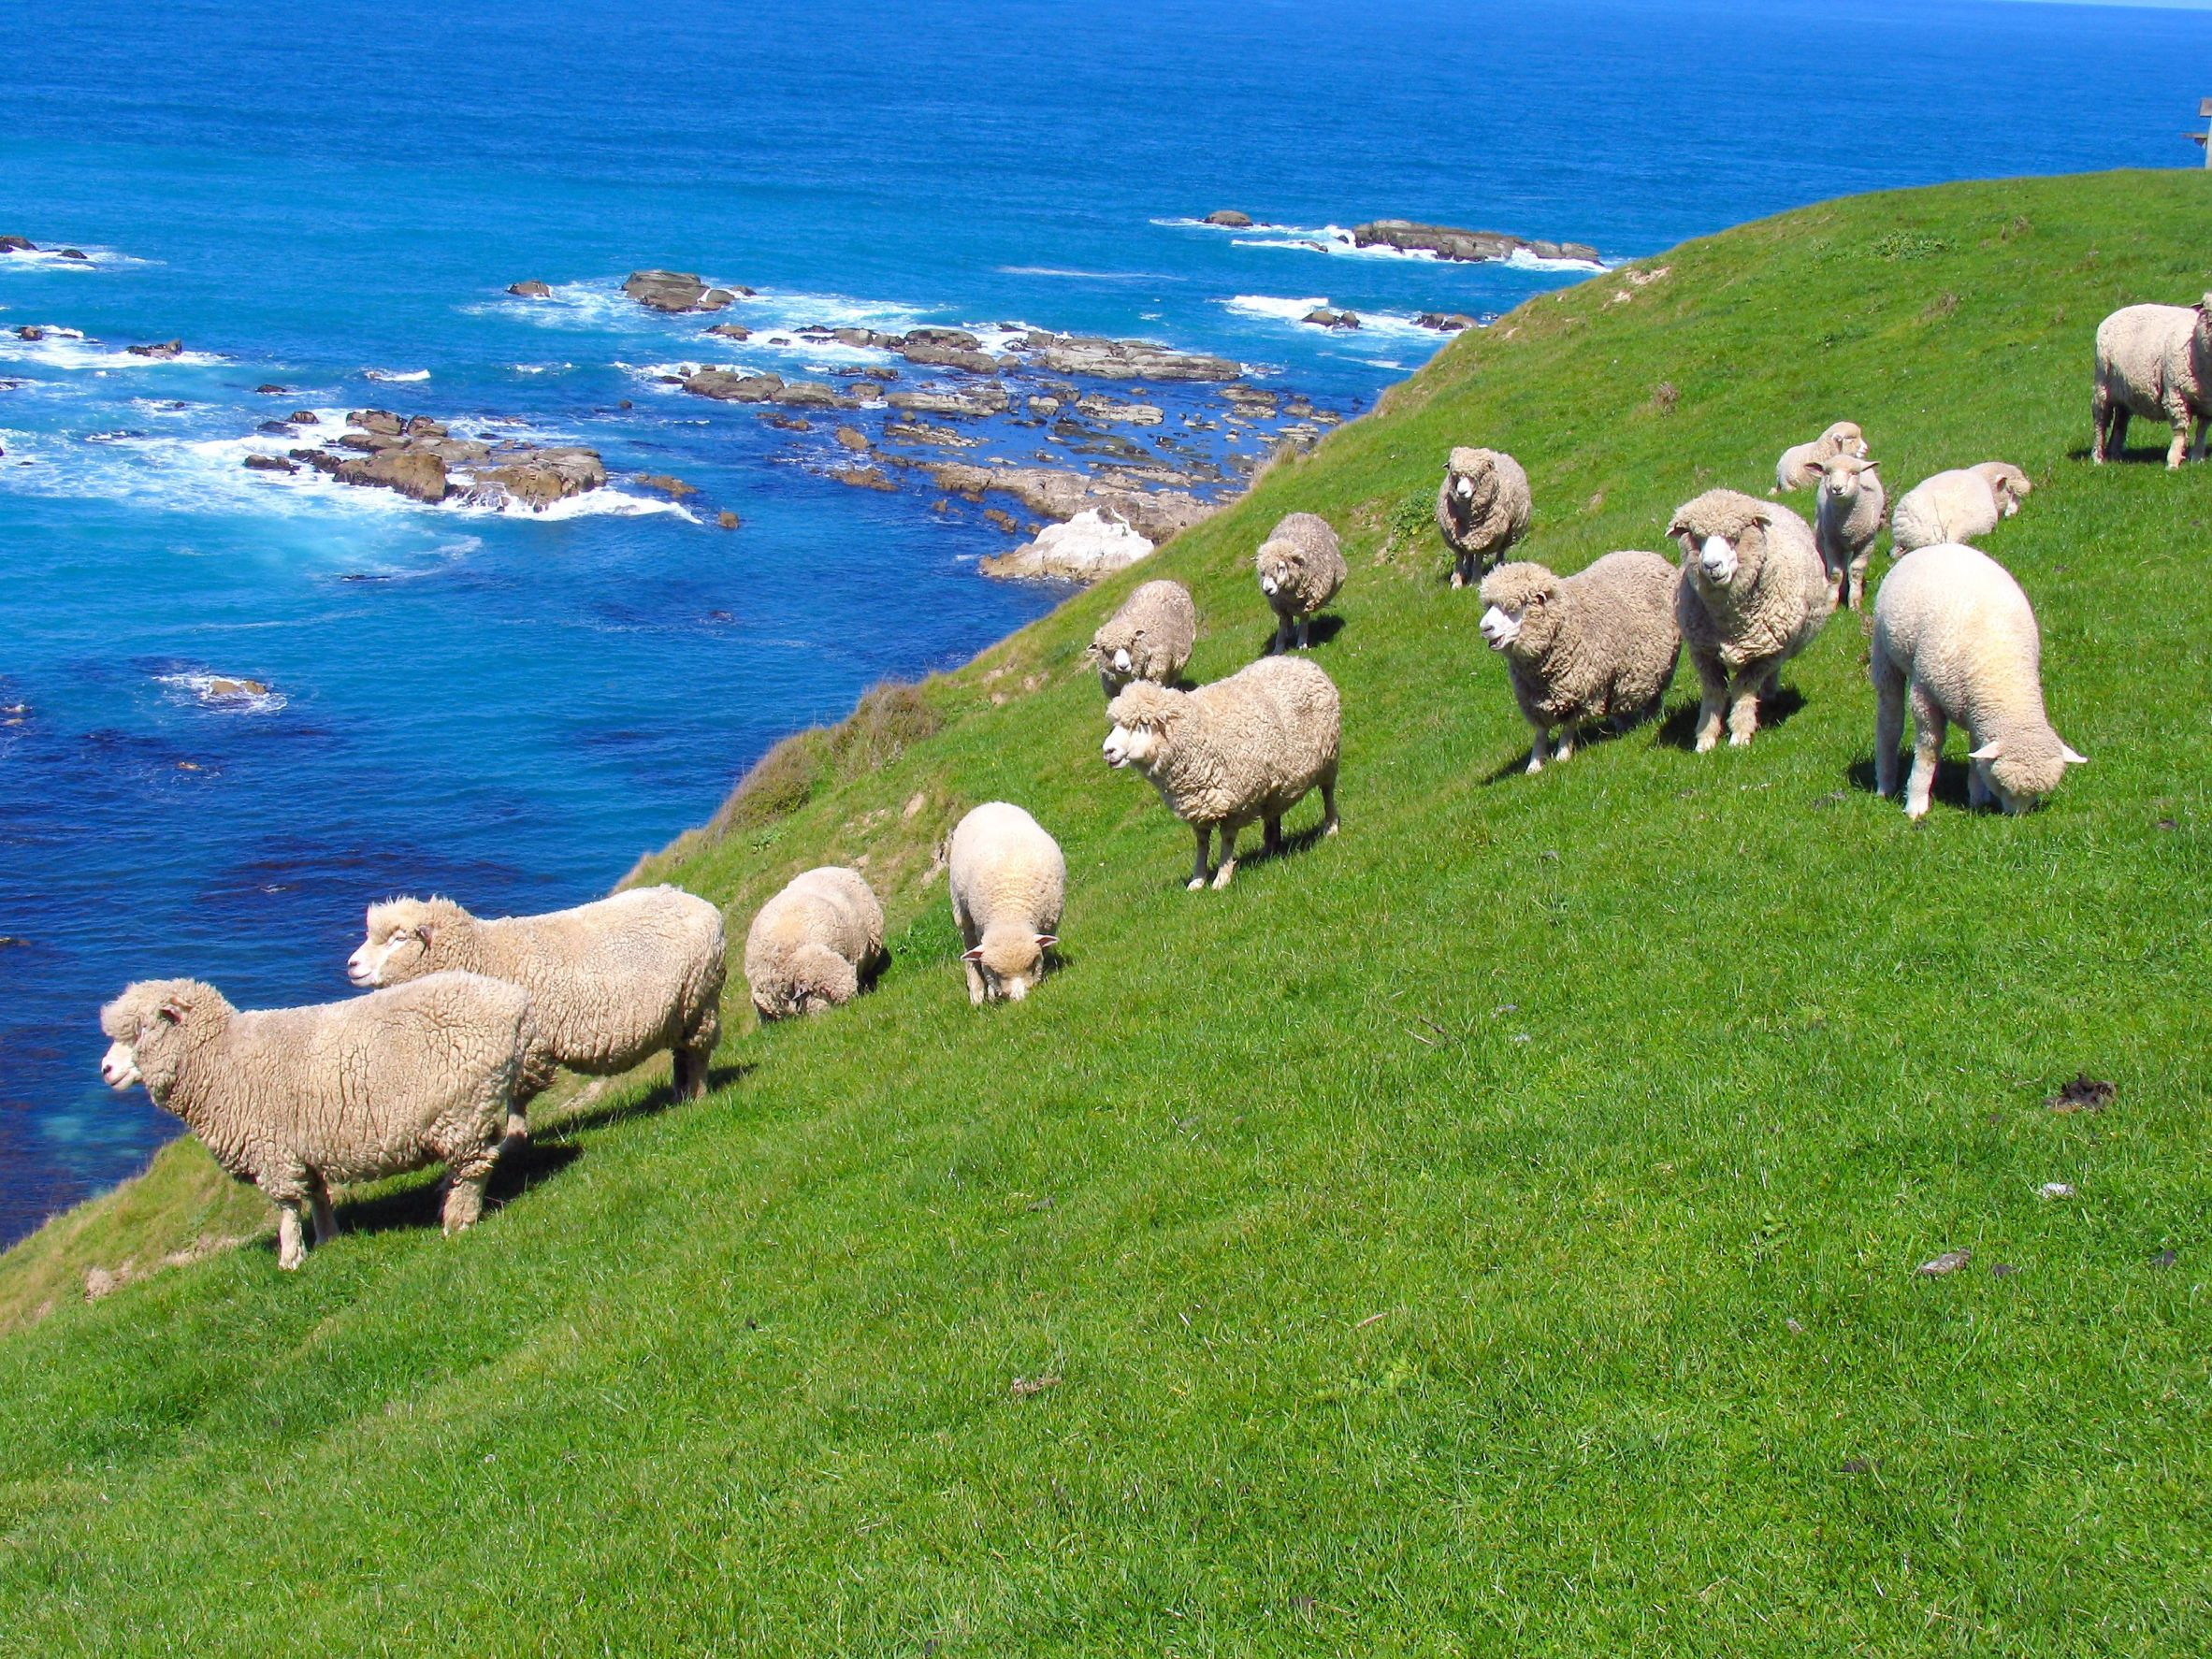 new zealand sheep 123rf